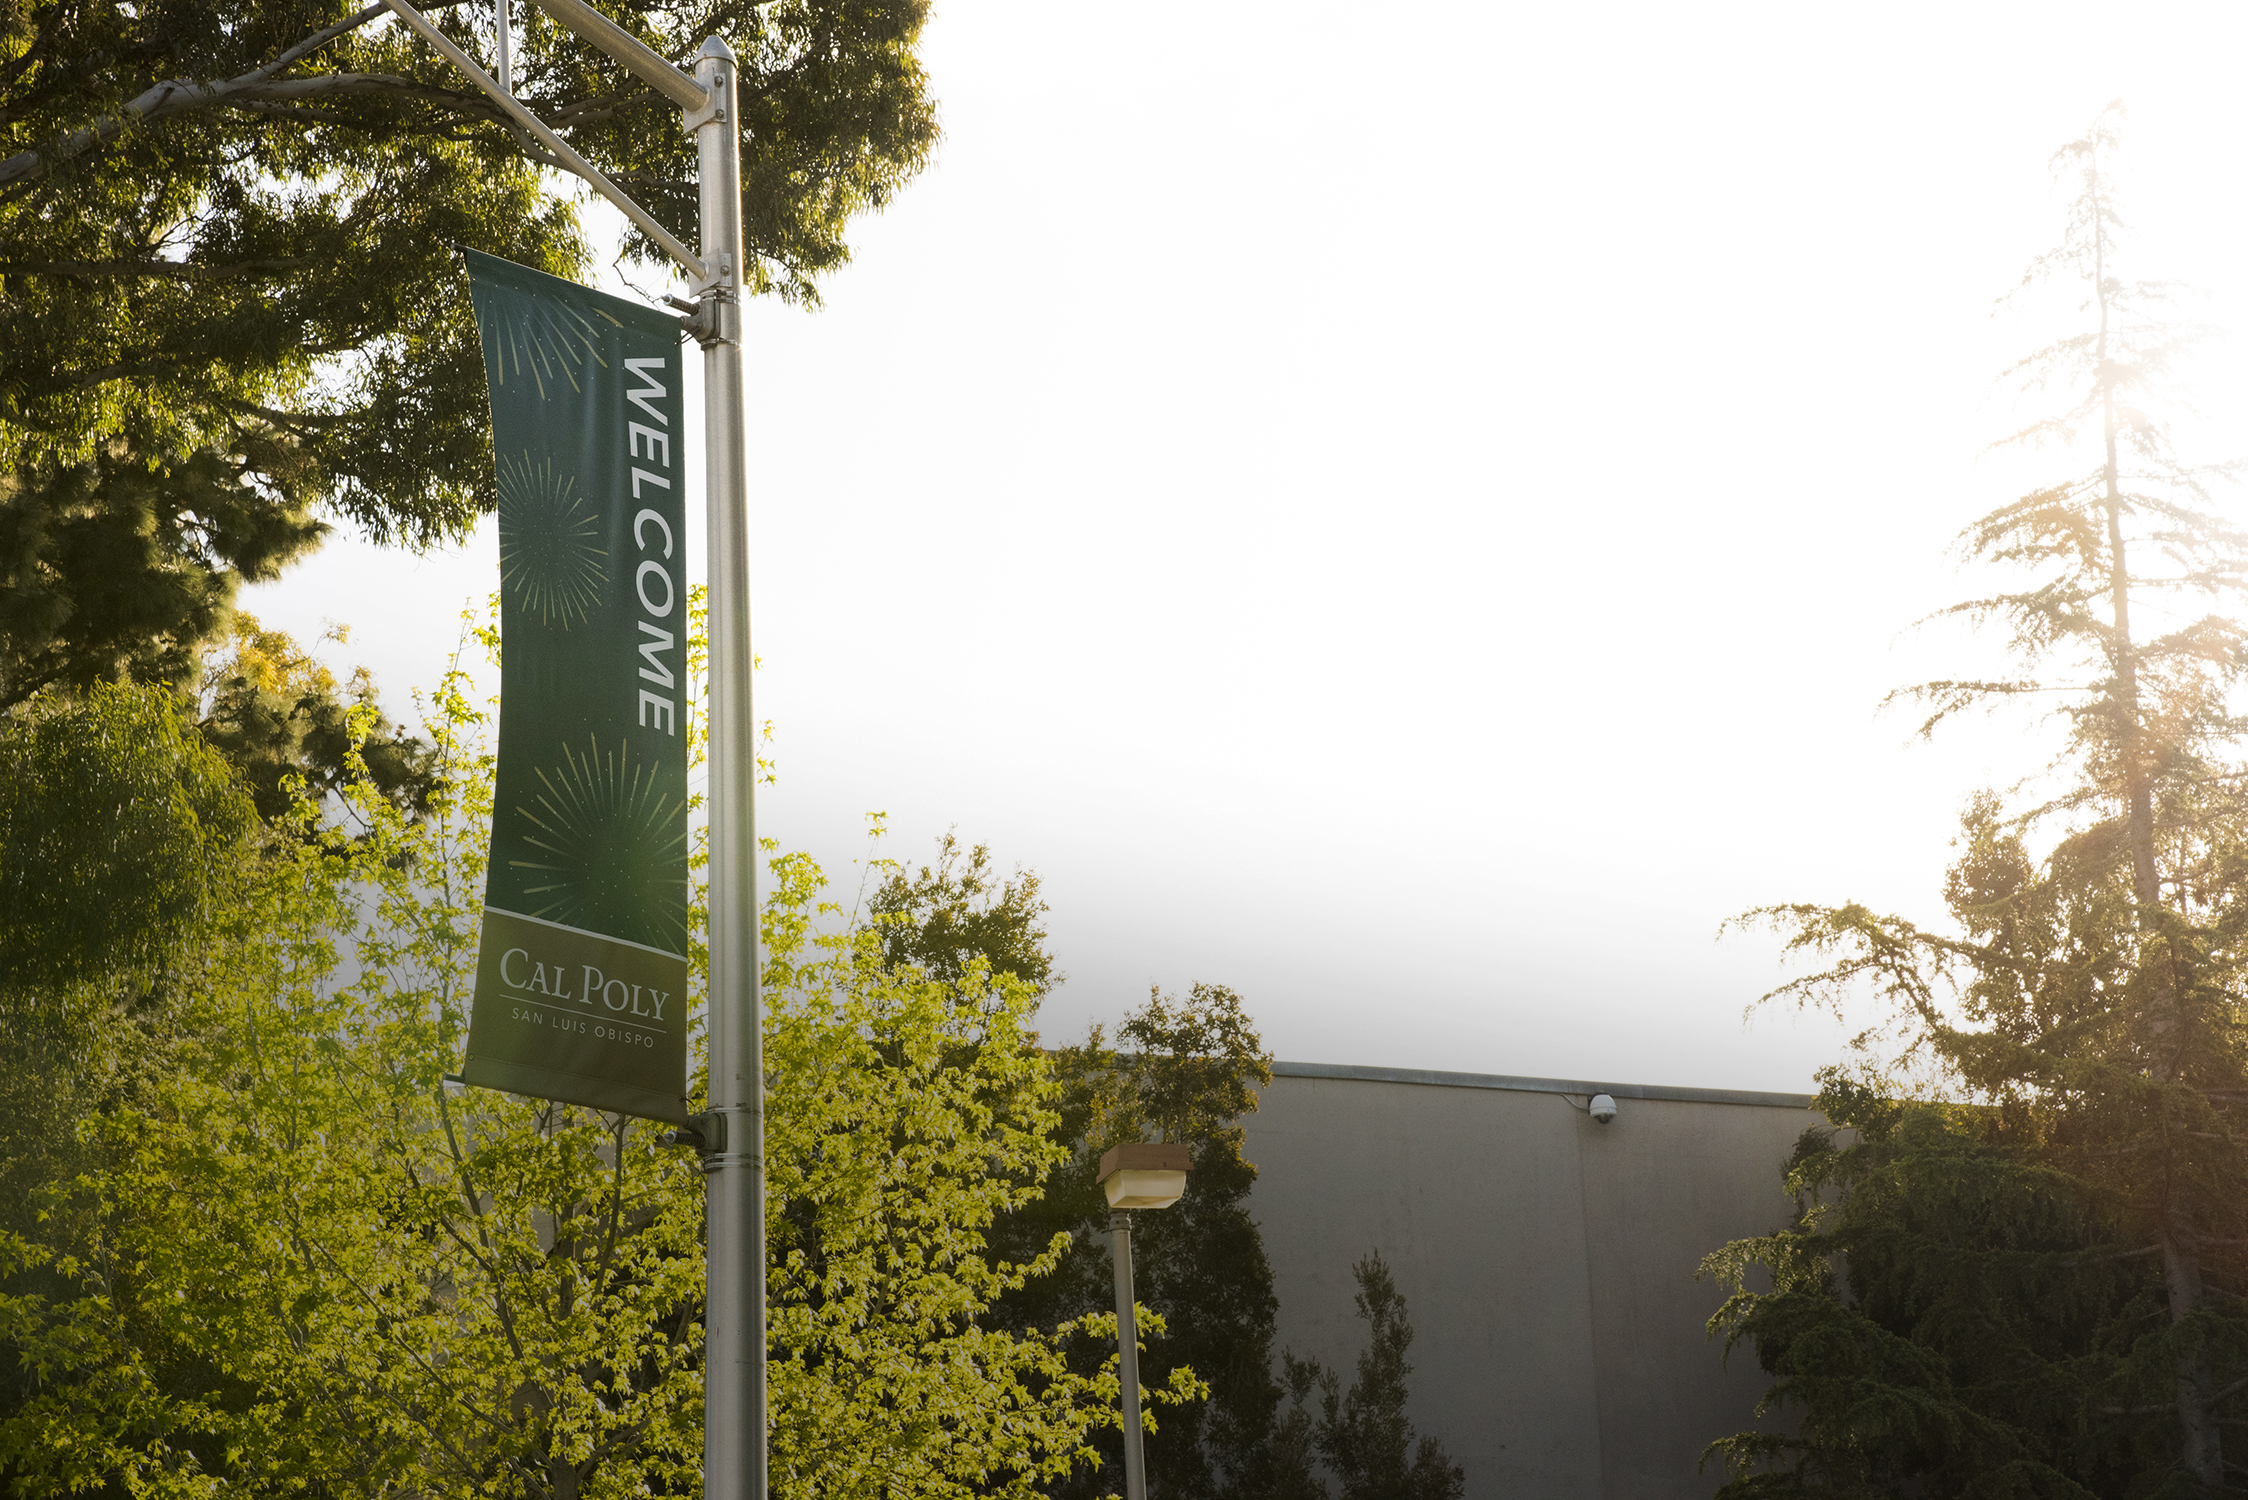 A lamp post hanging Cal Poly banner